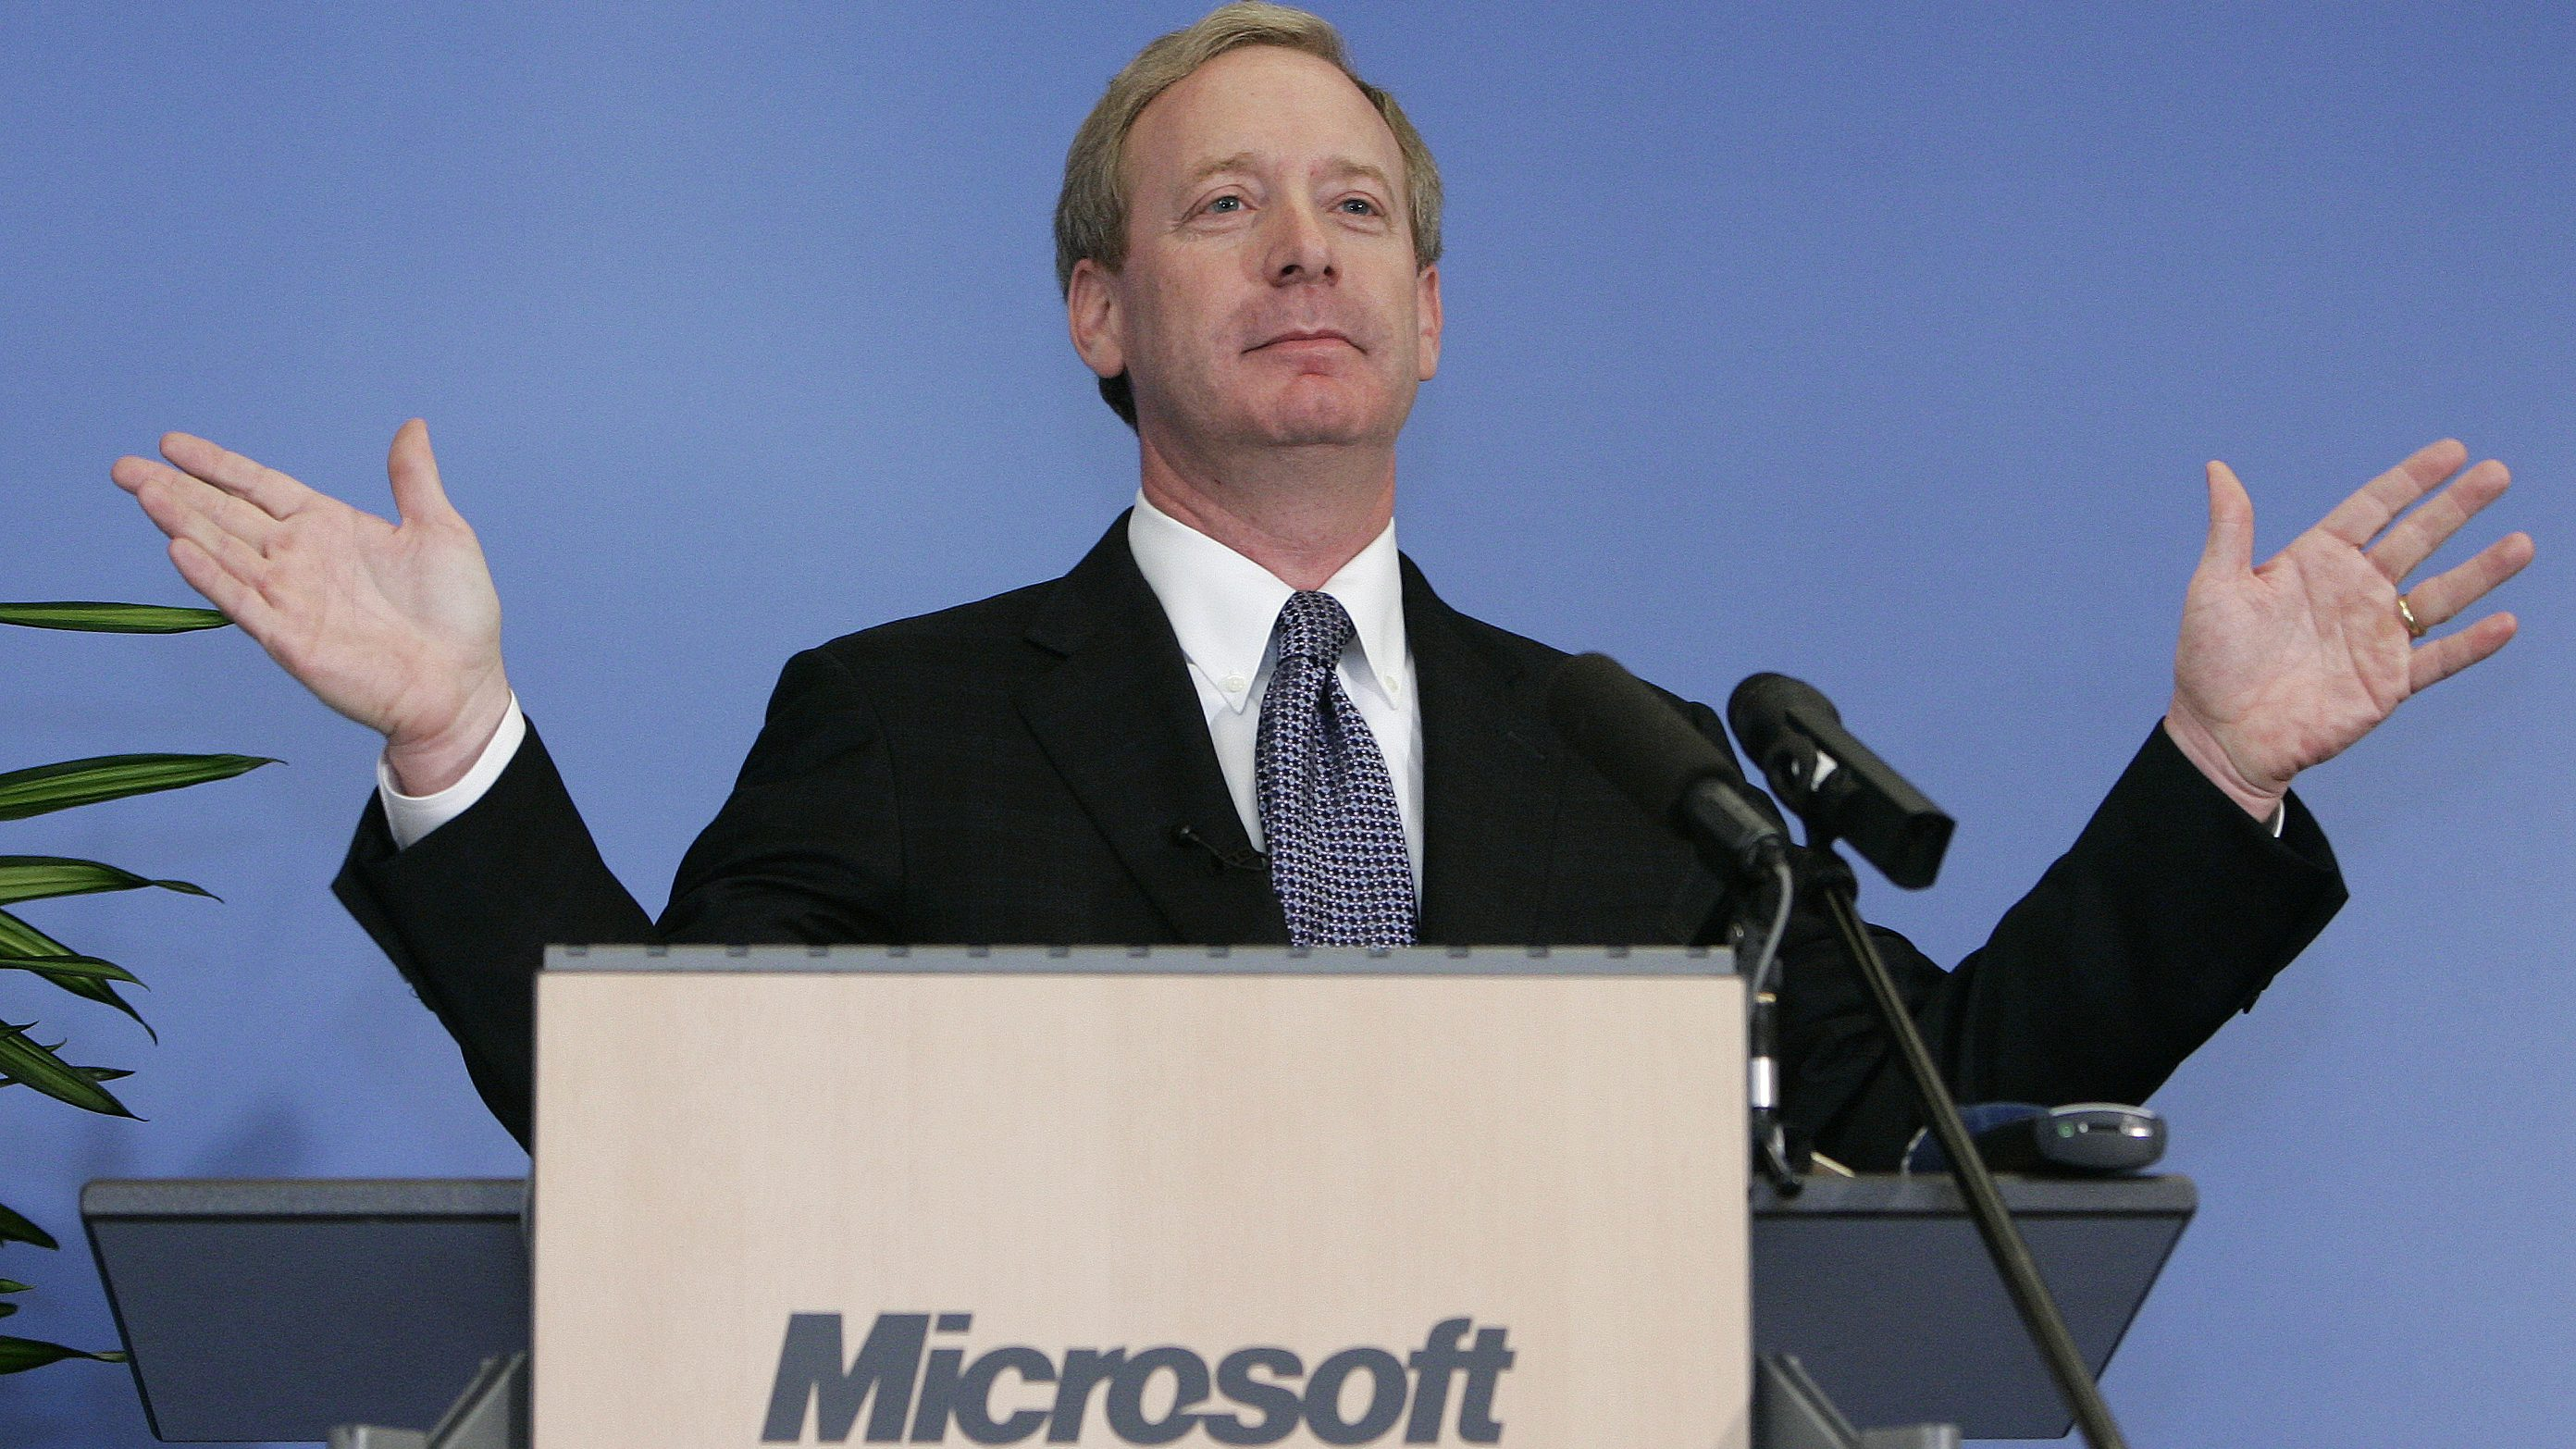 """Microsoft General Counsel Brad Smith gestures during a news conference in Brussels September 17, 2007. Microsoft general counsel Brad Smith said on Monday an EU court ruling upholding a landmark European Commission antitrust decision against the software giant would have an """"extraordinary impact""""."""